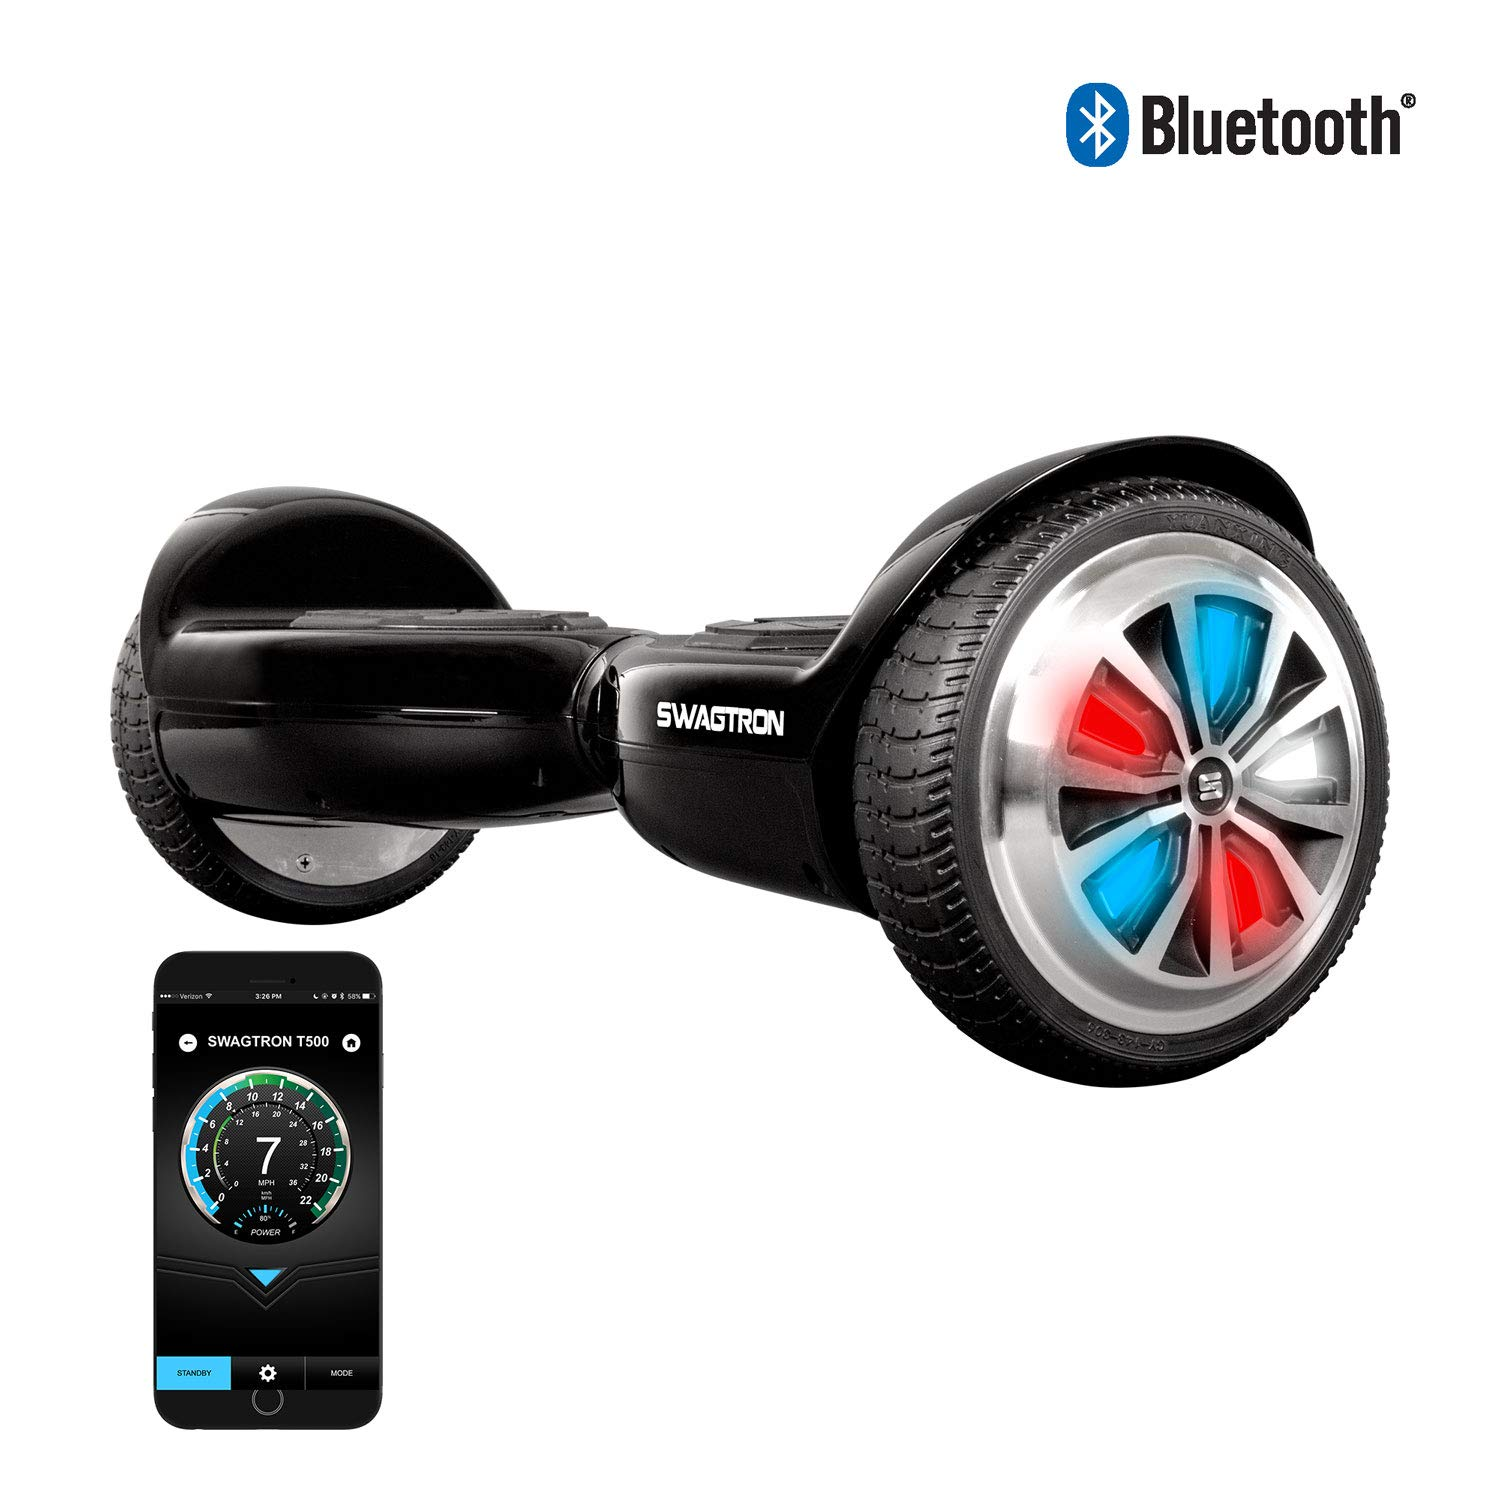 Swagtron T500 App-Enabled Bluetooth Hoverboard for Kids; LED Light-Up Wheels, Entry-Level Self-Balancing Scooter w/Optional Learning Mode, UL2272 (Black) by Swagtron